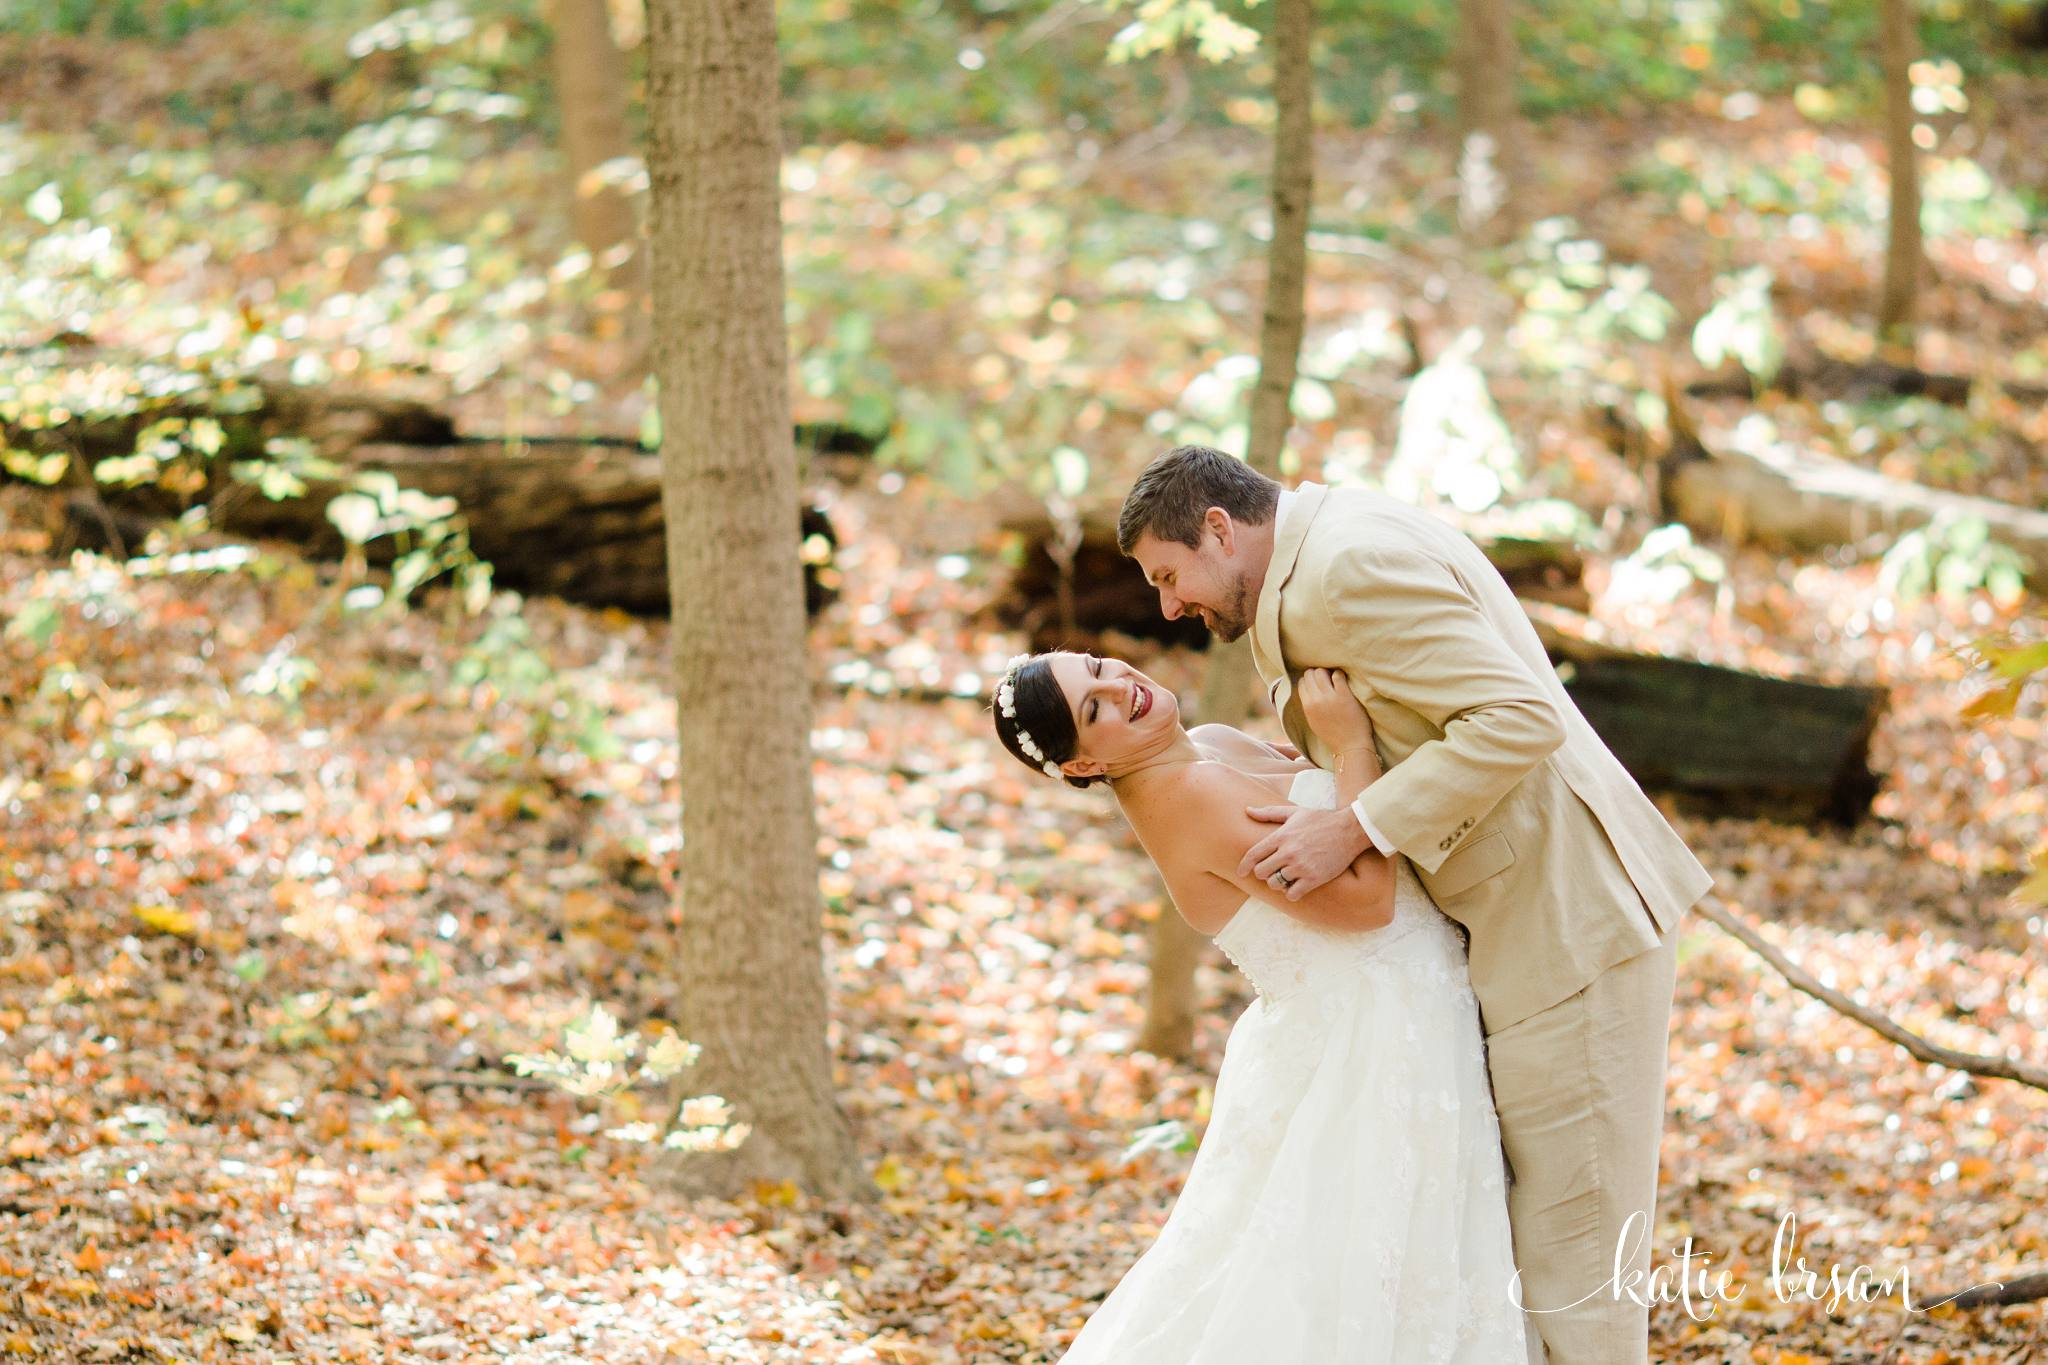 DownersGrove_BackyardWedding_GilbertsPark_1068.jpg